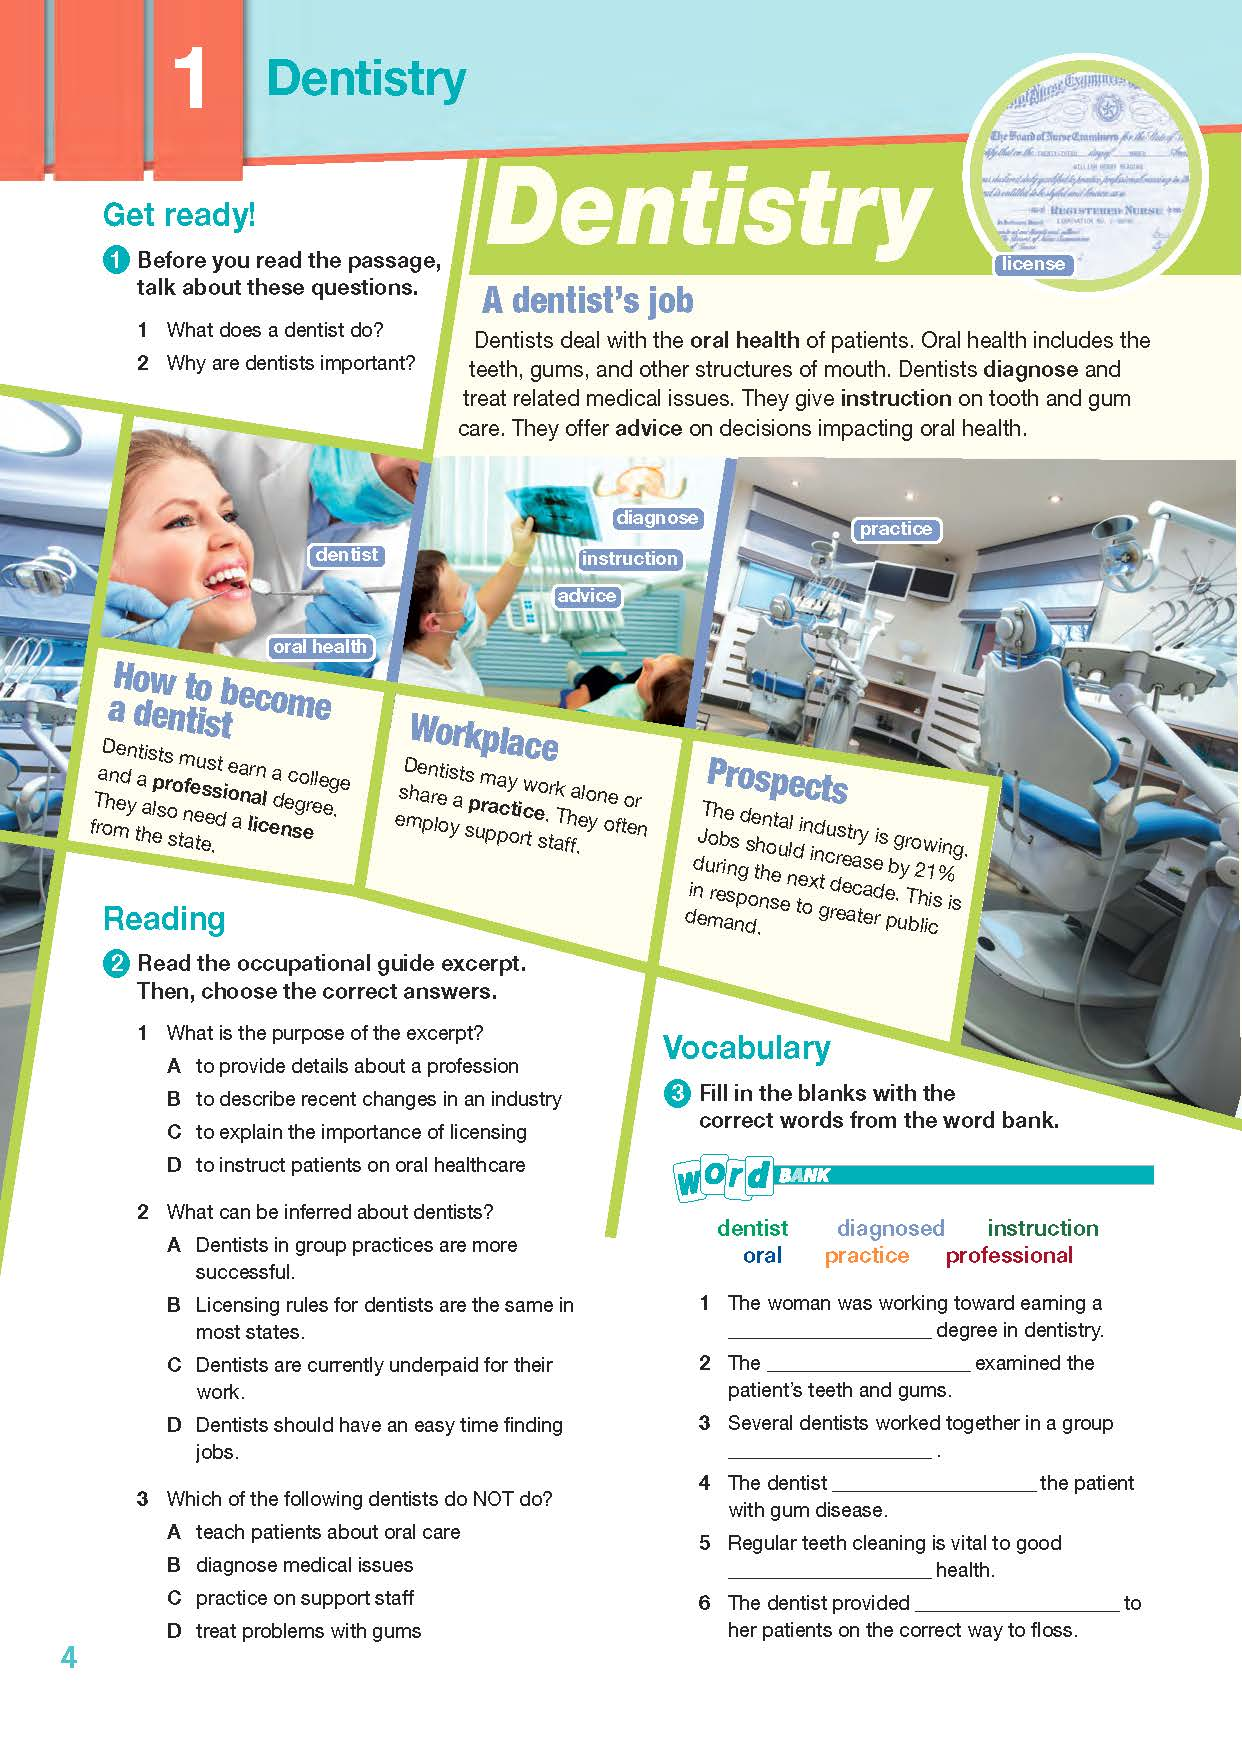 ESP English for Specific Purposes - Career Paths: Dentistry - Sample Page 1